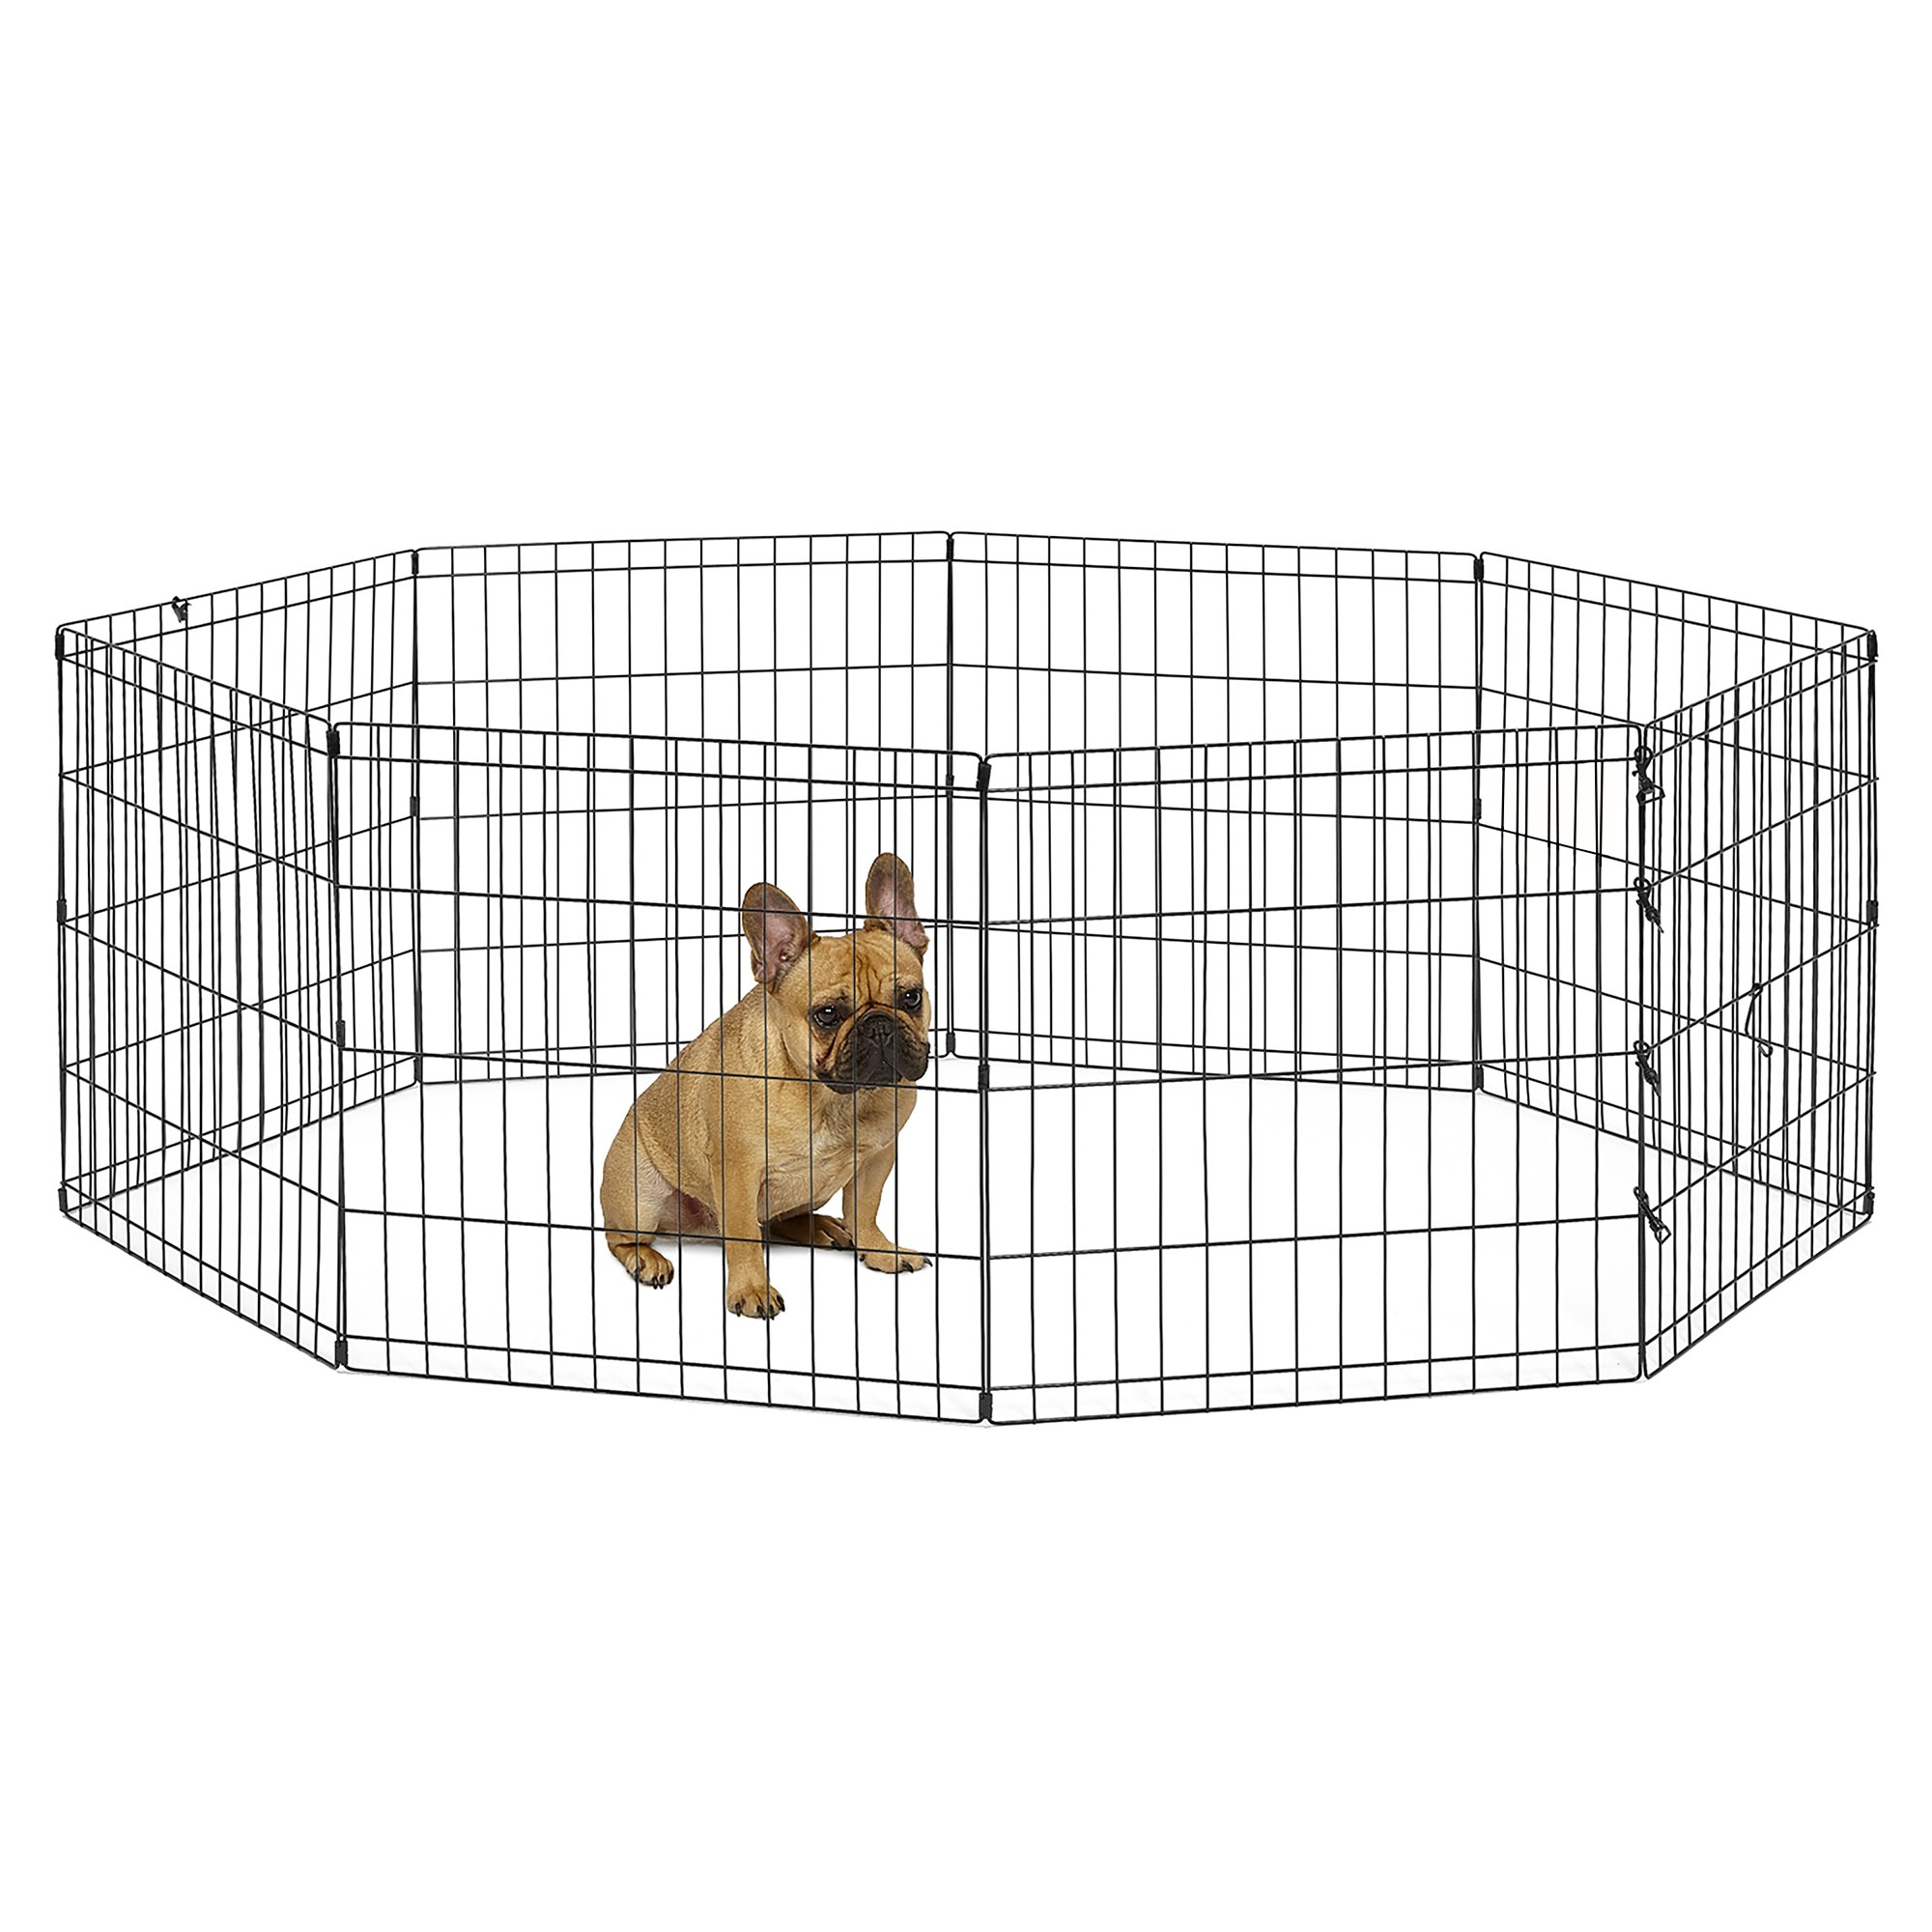 New World Pet Products B550-24 Foldable Exercise Pet Playpen, Black, Small/24'' x 24'' by New World Pet Products